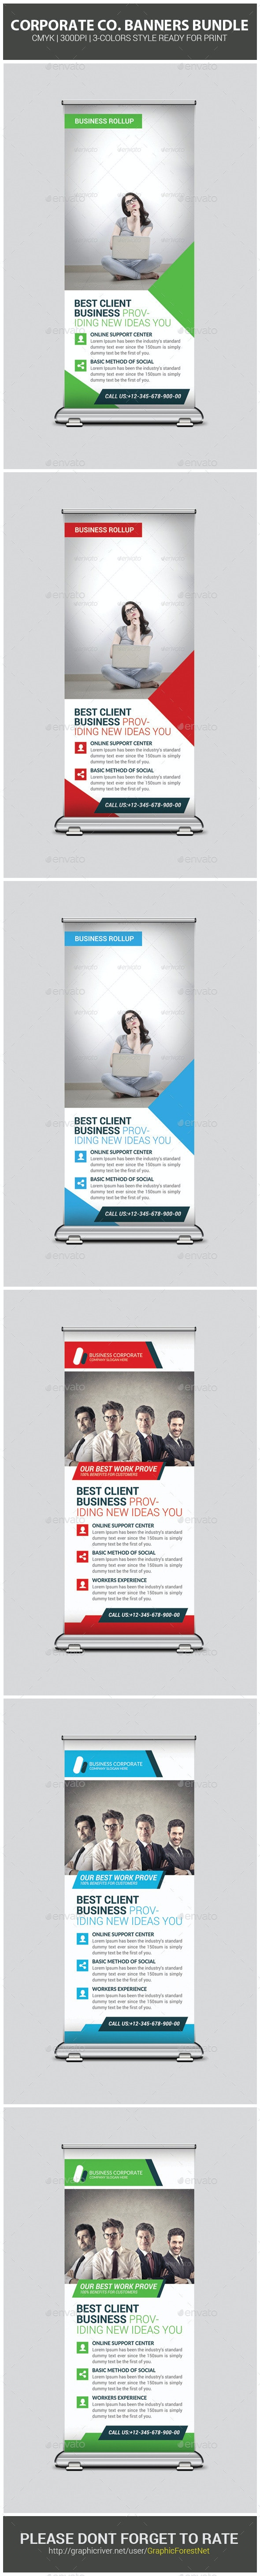 Corporate Business Banners Bundle - Signage Print Templates